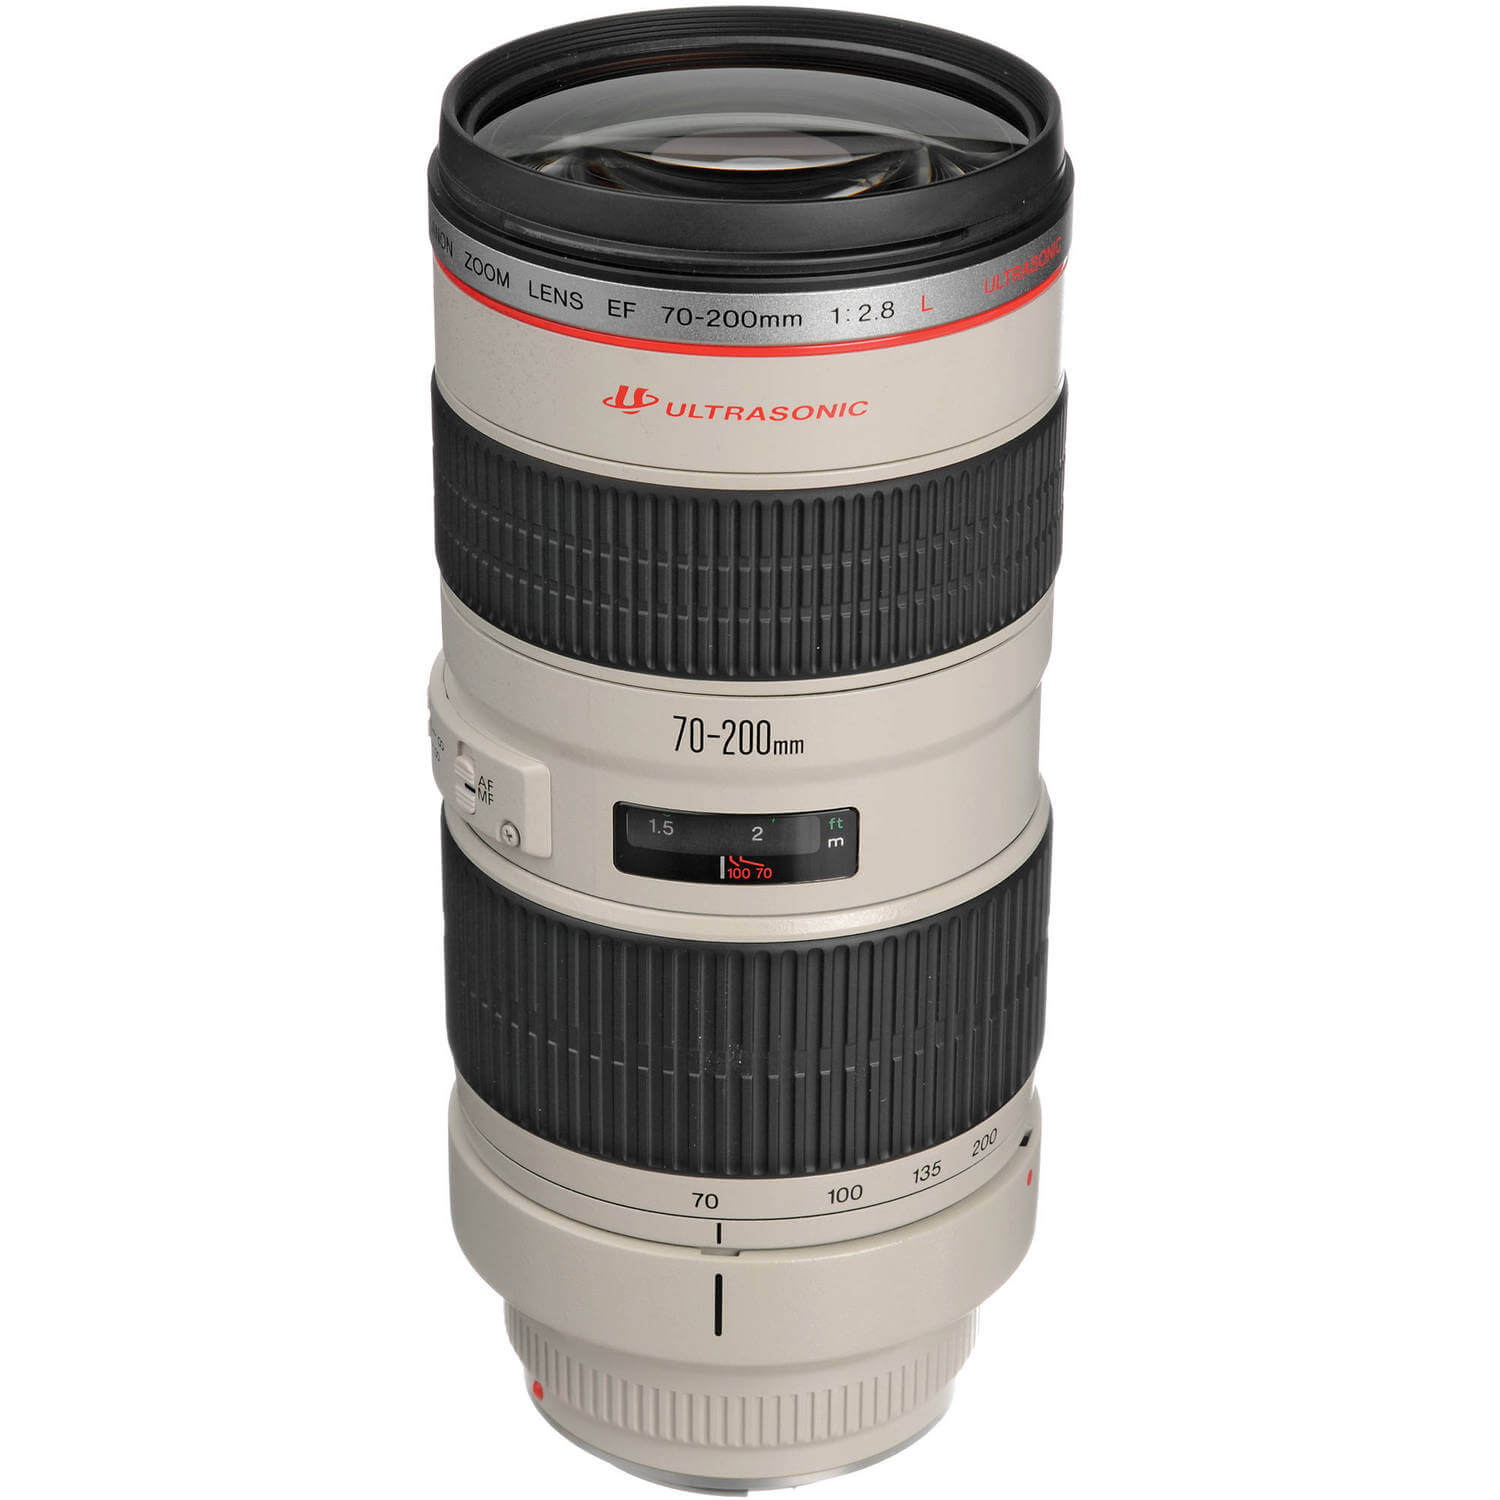 A truly versatile lens, the EF 70-200mm f/2.8L USM is a Canon L-series zoom spanning a flexible range of telephoto focal lengths. Beyond its portrait-length to medium tele range, this lens is also characterized by its bright f/2.8 constant maximum aperture, which affords notable control over depth of field and benefits working in challenging lighting conditions. Supporting the versatility is a sophisticated optical design, which utilizes four ultra-low dispersion elements to suppress color fringing and chromatic aberrations throughout the zoom range for high clarity. Also, a Super Spectra coating has been applied to help reduce lens flare and ghosting for greater contrast and color neutrality.  Complementing its optical assets, this 70-200mm f/2.8 also sports a ring-type USM and internal focusing mechanism for quick, quiet, and accurate autofocus performance, as well as full-time manual focus override. Additionally, a removable rotating tripod collar is included for stable use of the lens atop a tripod or monopod.  Versatile telephoto zoom is designed for full-frame Canon EF-mount DSLRs, however can also be used with APS-C models where it provides a 112-320mm equivalent focal length range. Bright constant f/2.8 maximum aperture affords consistent performance throughout the zoom range and offers notable control over depth of field for working with selective focus techniques. Four ultra-low dispersion glass elements reduce color fringing and chromatic aberrations for high clarity and color fidelity. Super Spectra coating has been applied to individual elements to minimize ghosting and flare for greater contrast and color neutrality when working in strong lighting conditions. A ring-type Ultrasonic Motor (USM), along with an internal focusing system, is employed to deliver fast, precise, and quiet autofocus performance as well as full-time manual focus override. Focus Limiter switch lets you constrain the focusing to two different ranges to suit different applications: